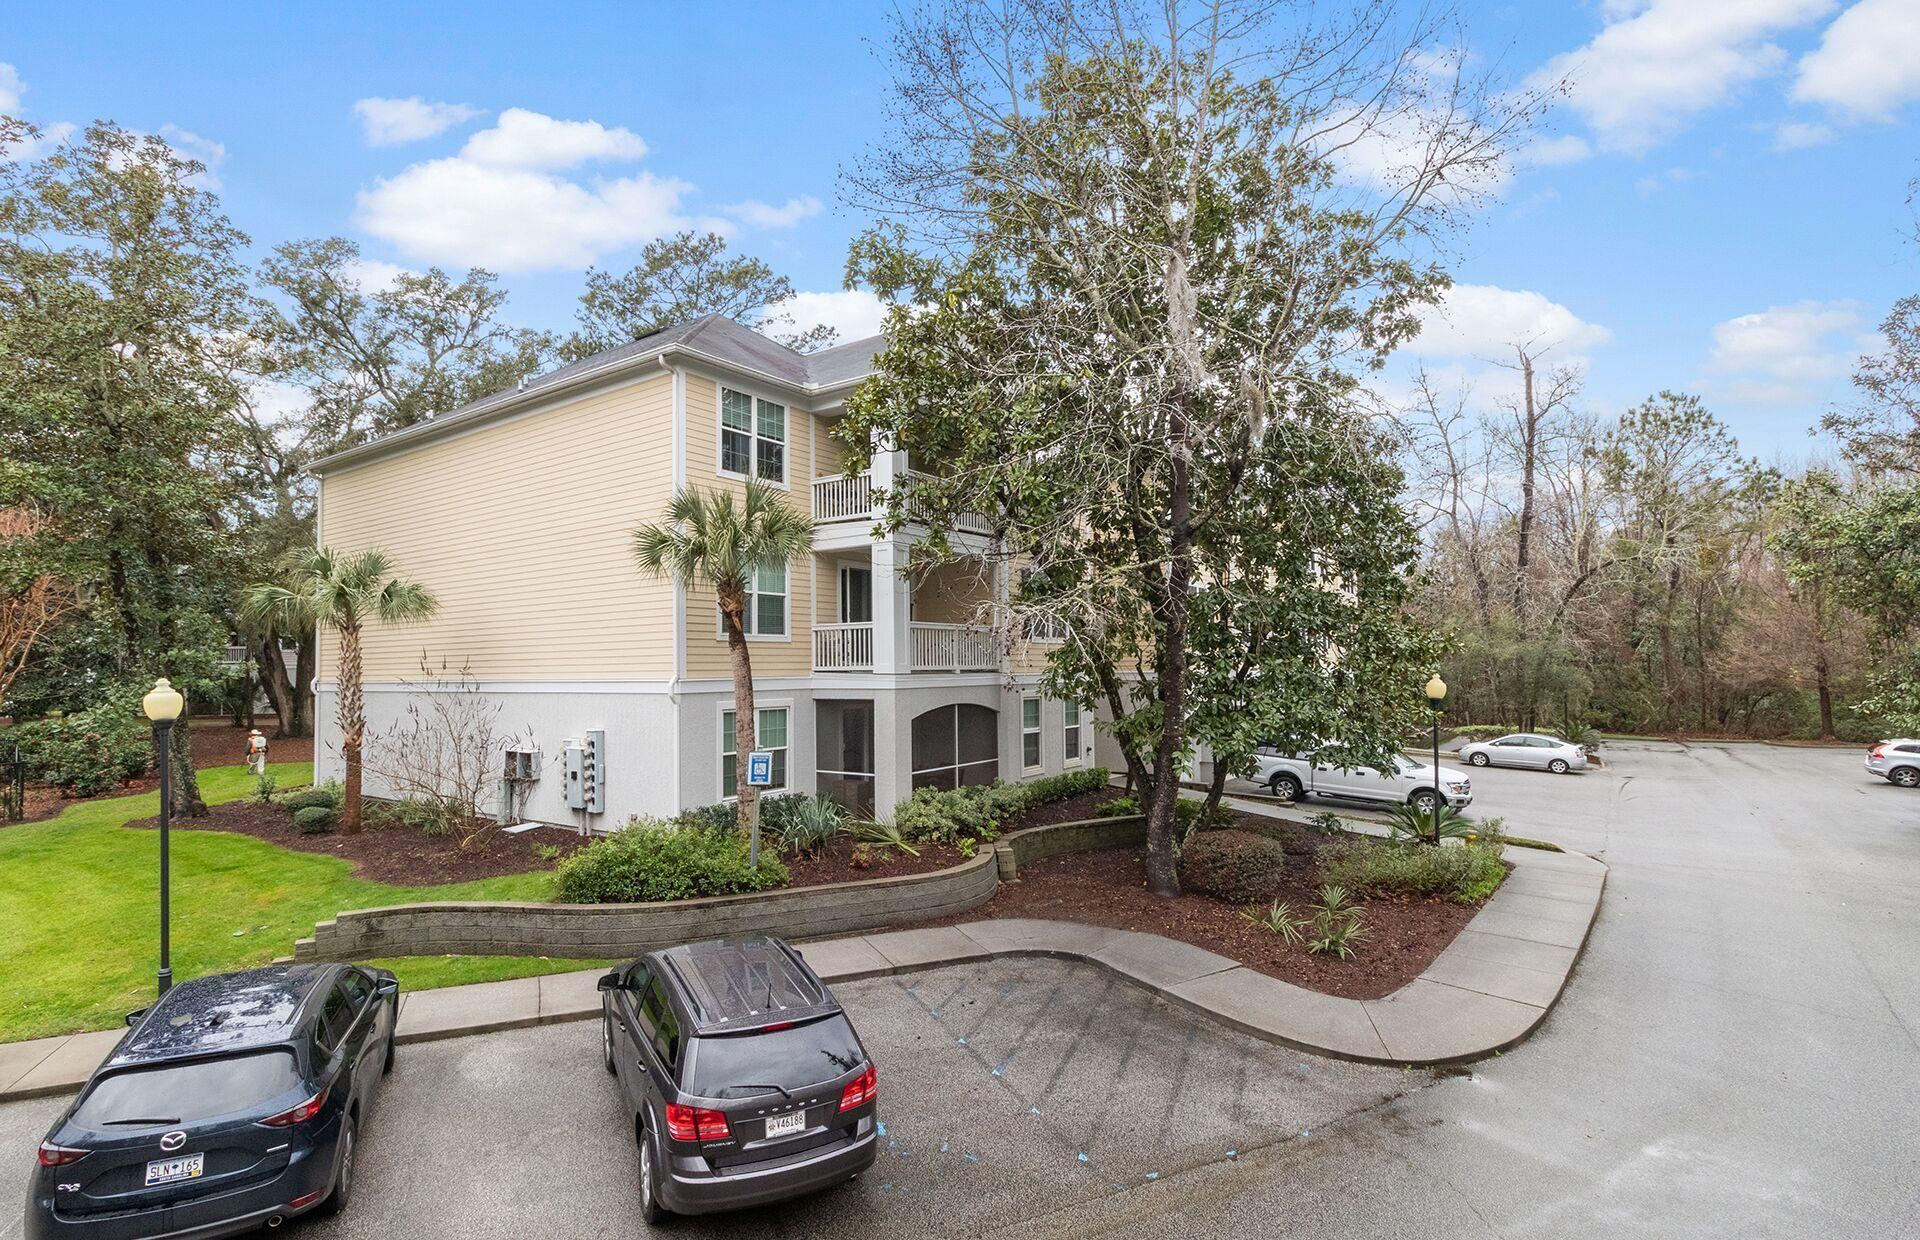 60 Fenwick Hall Allee Alley UNIT 727 Johns Island, Sc 29455